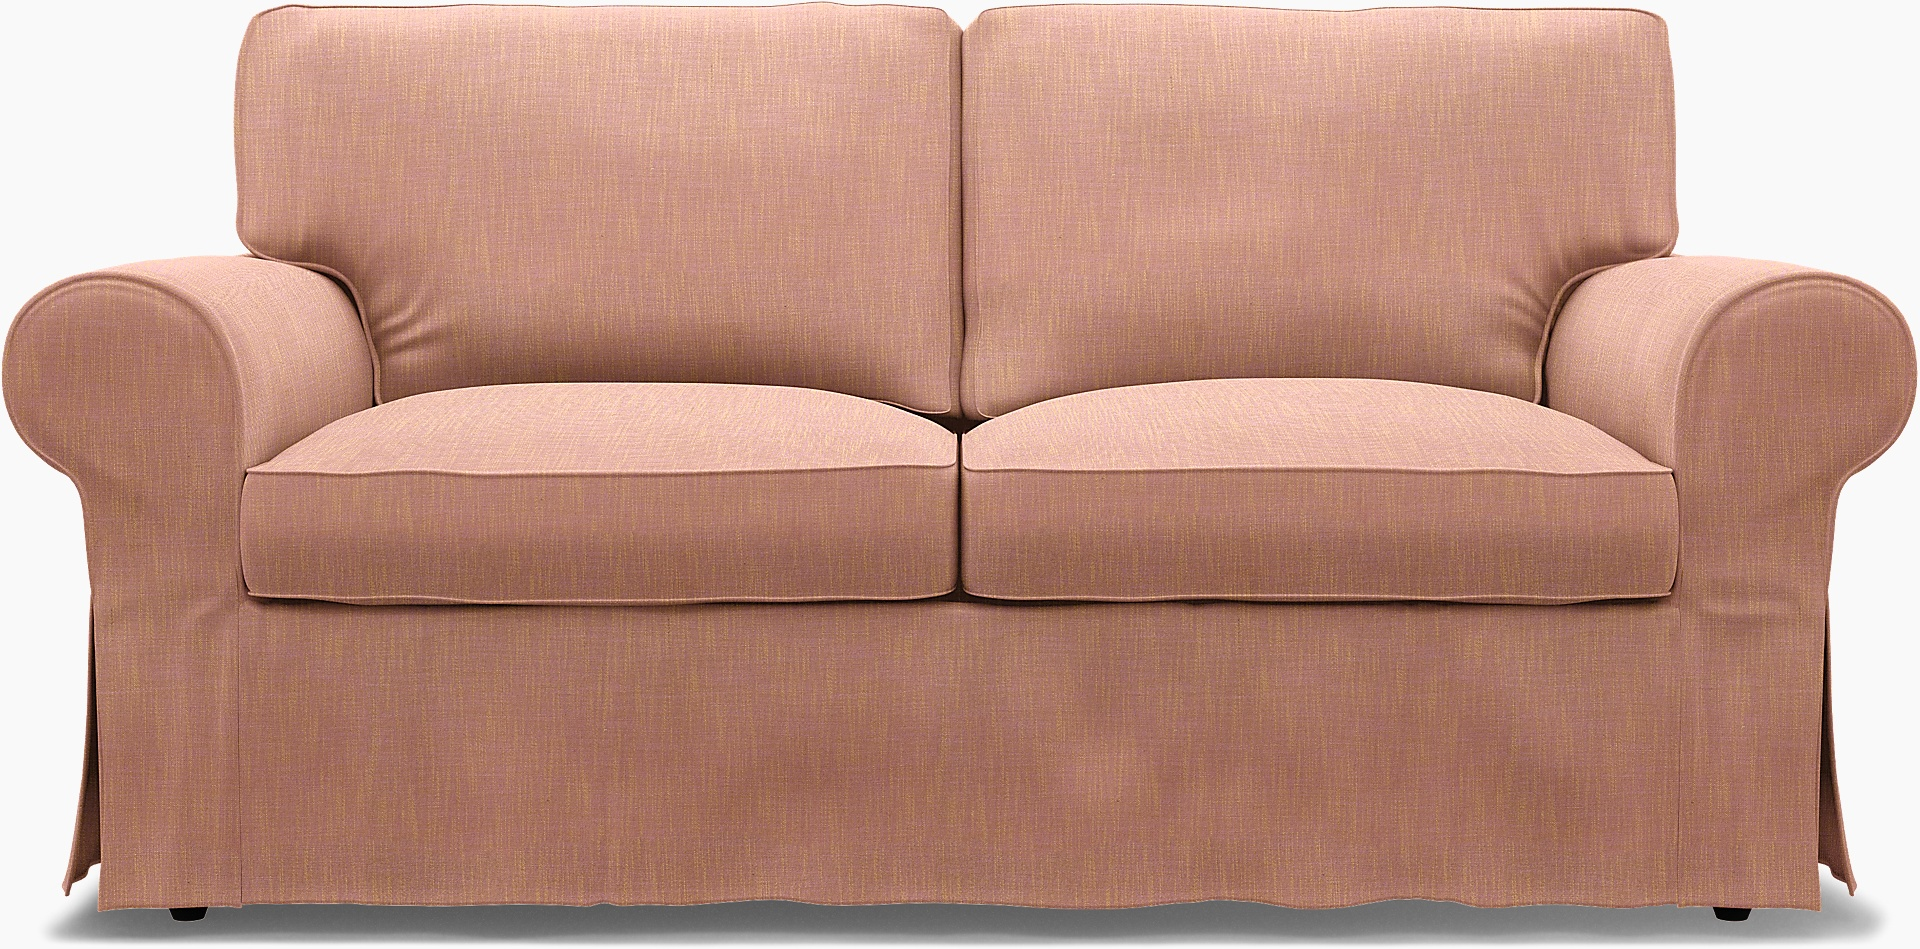 7 Best Slipcovers For Your Couch Stylish Removable Sofa Covers Apartment Therapy